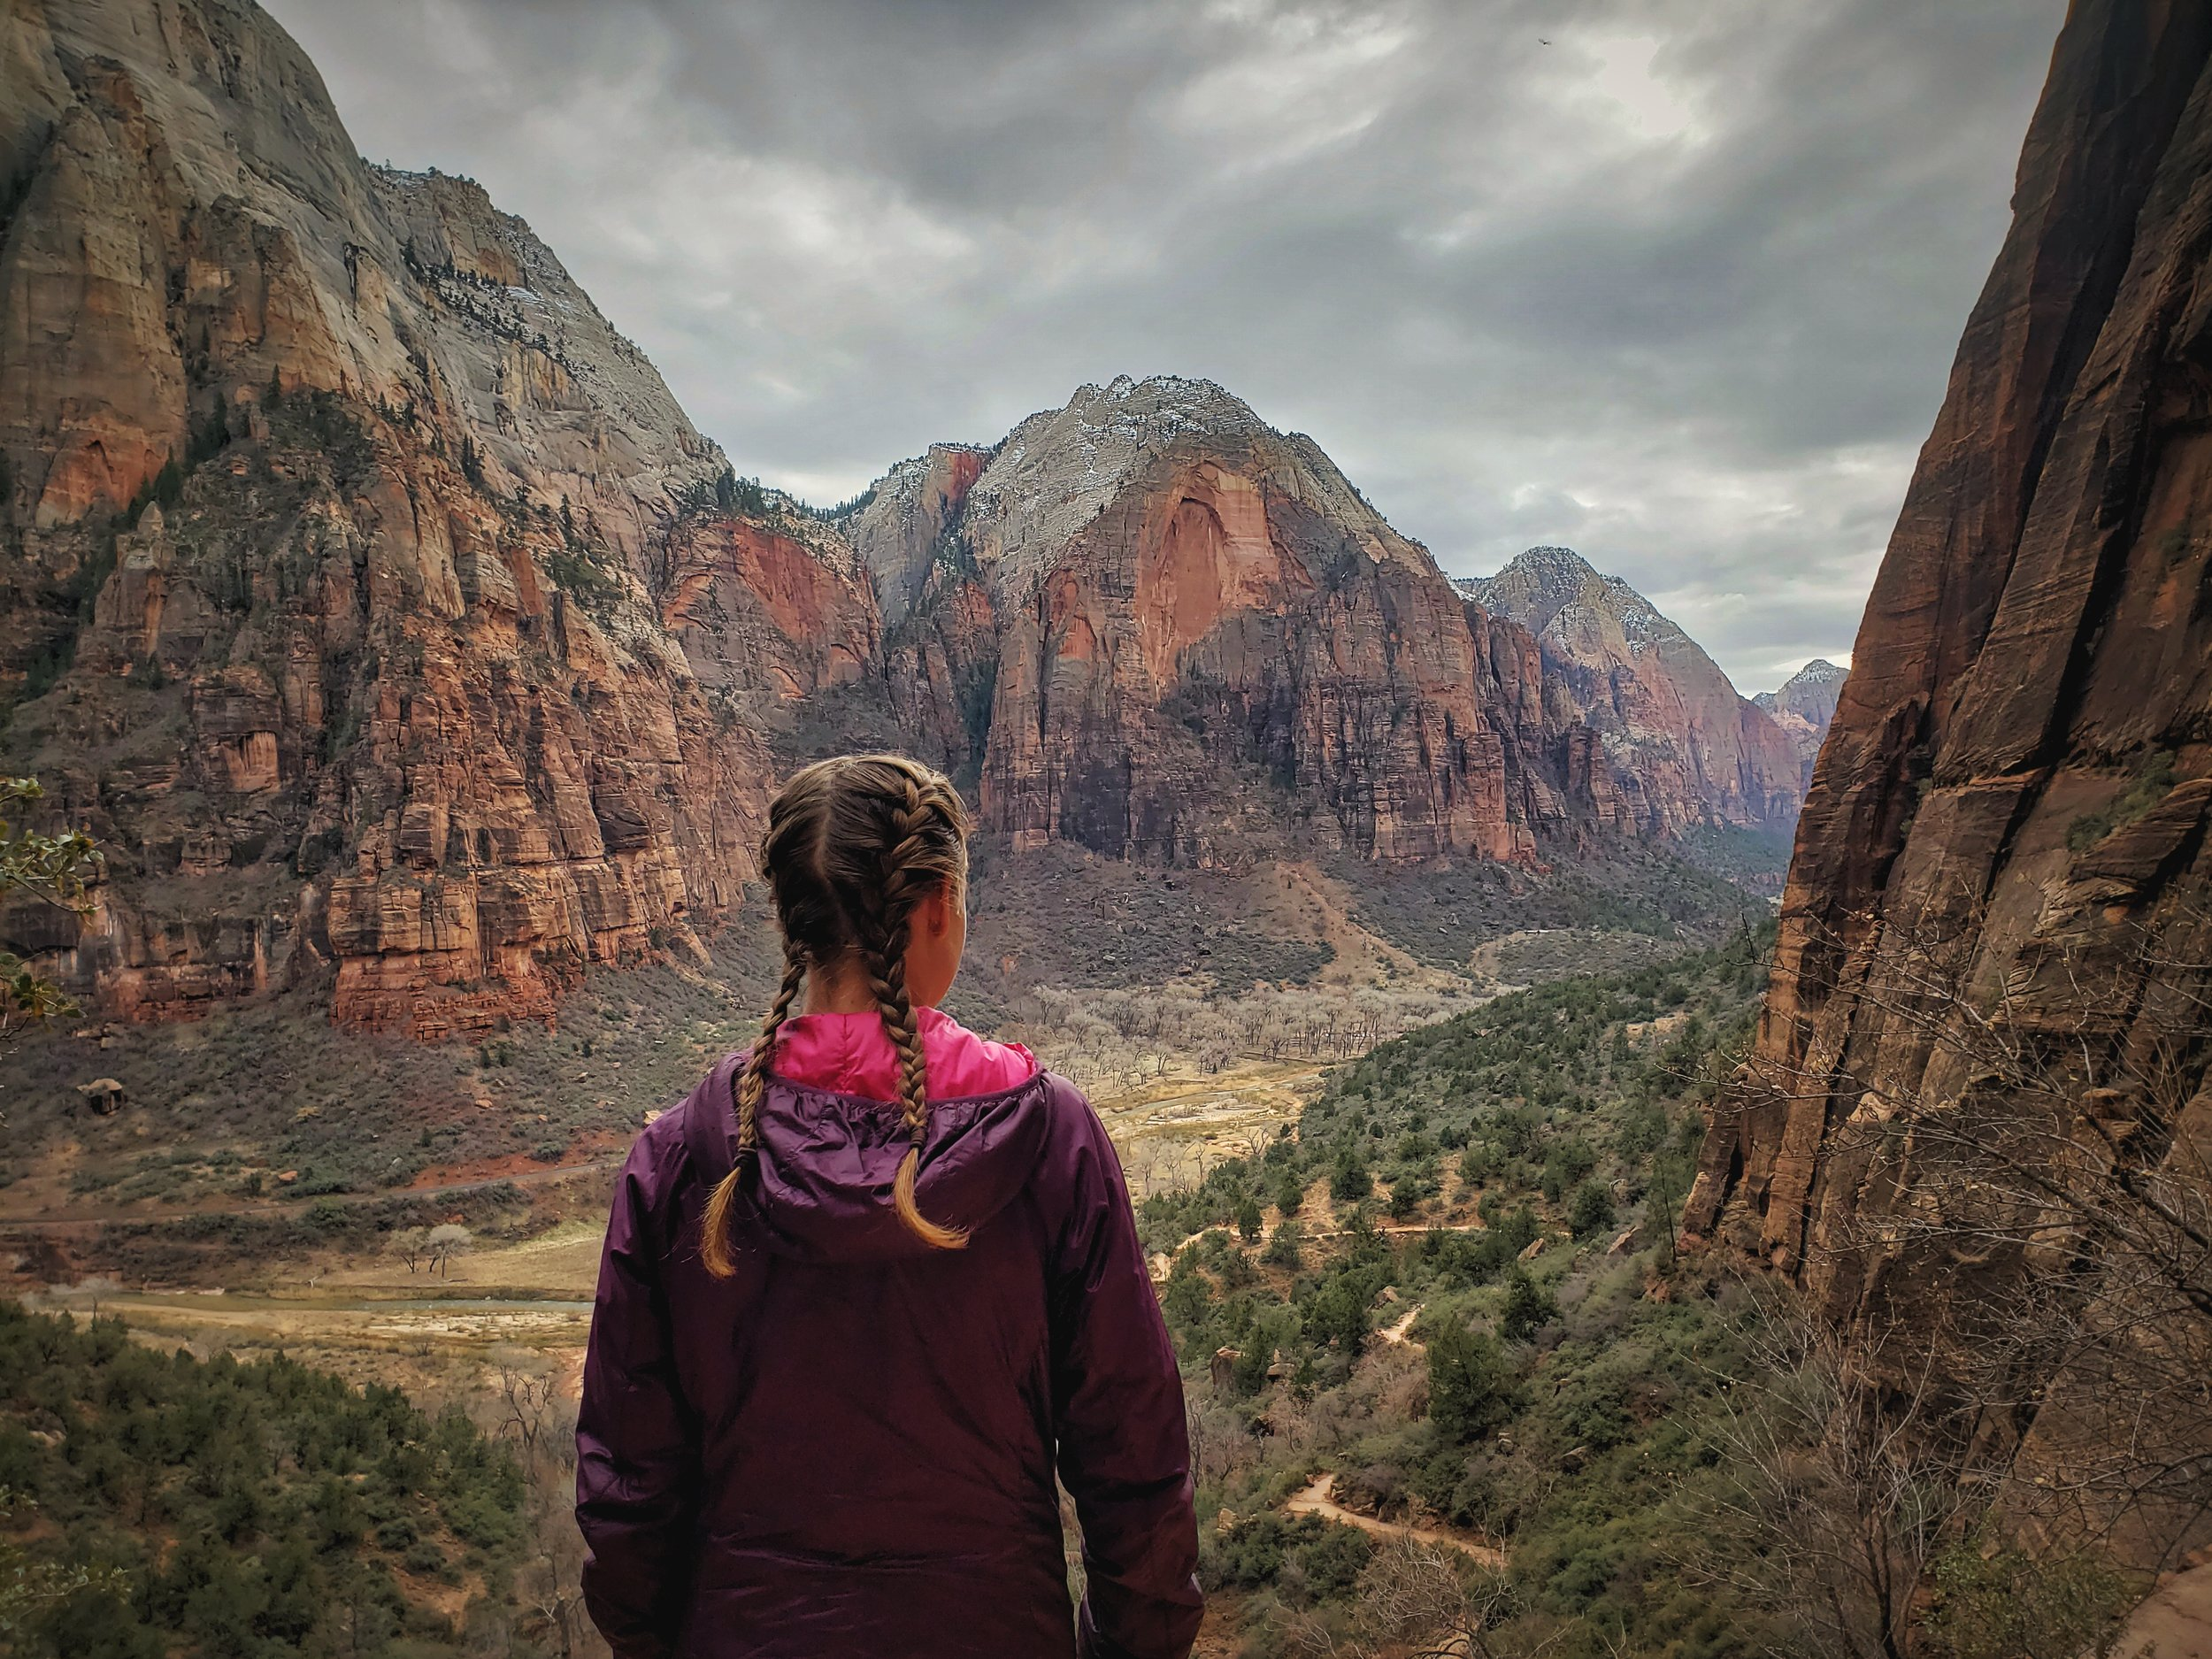 There's plenty to do in Zion National Park in winter. Even if snow or ice prevents you from accessing Angels Landing or the Rim Trails you can still find easy trails that lead you to incredible views.